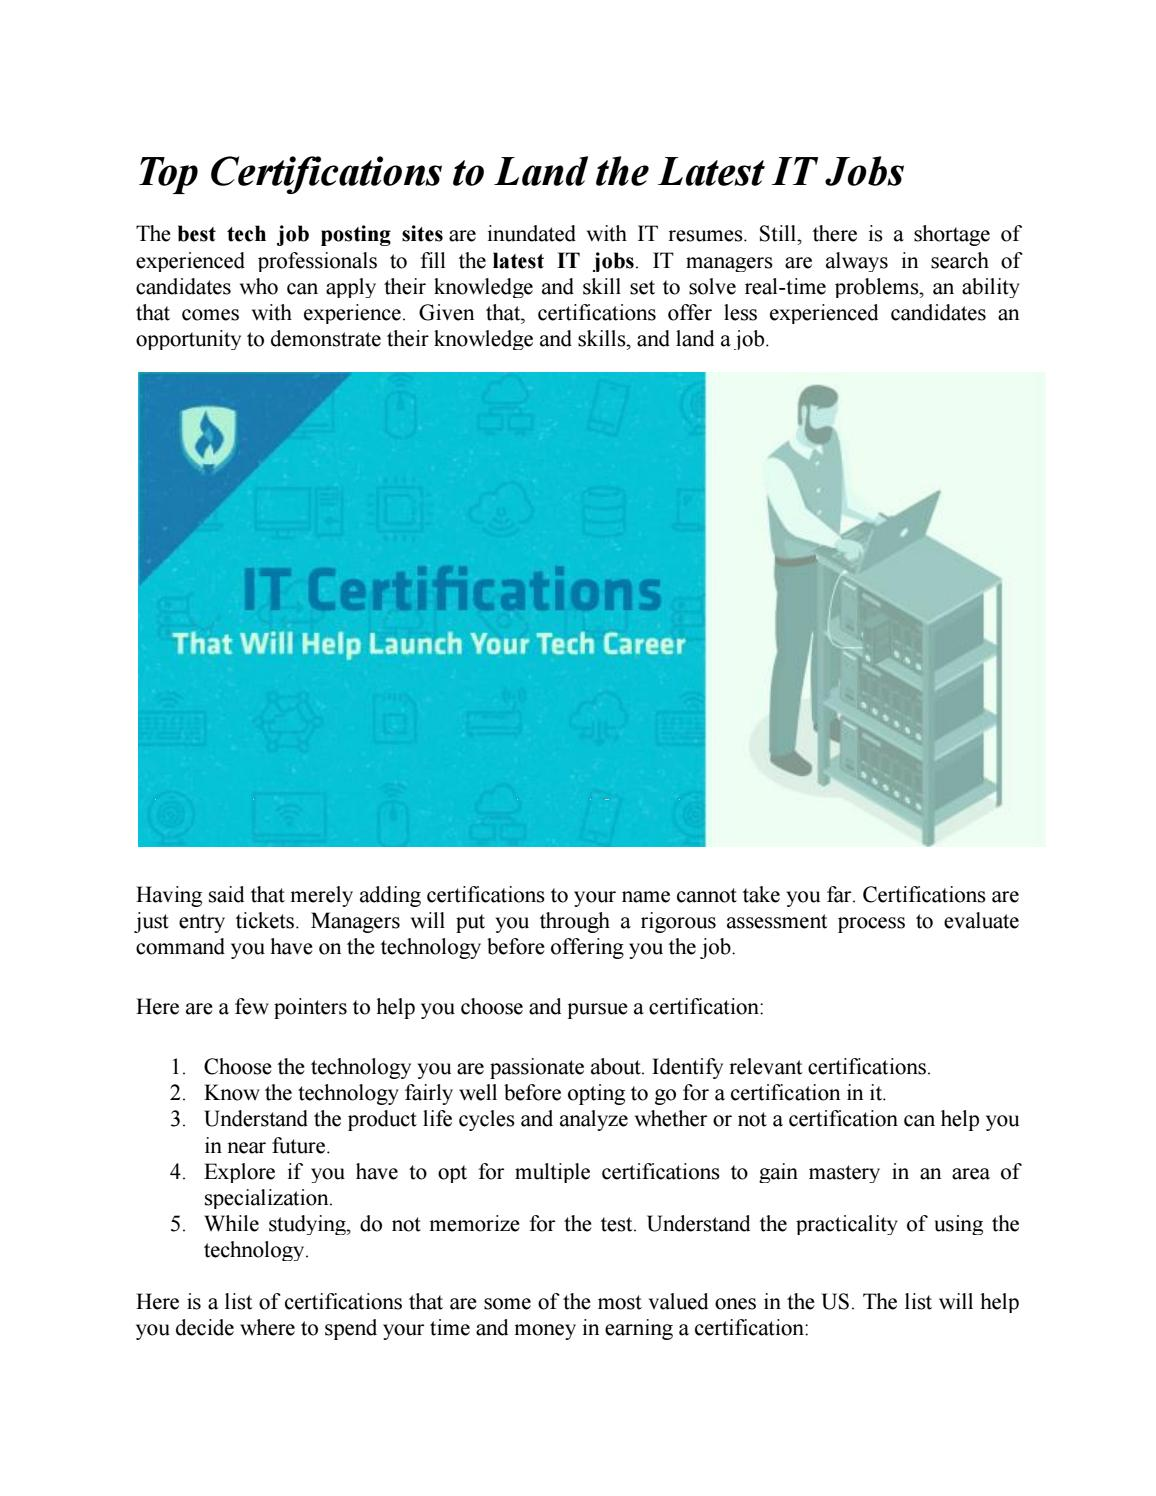 Top Certifications To Land The Latest It Jobs By Itjobcafe Issuu